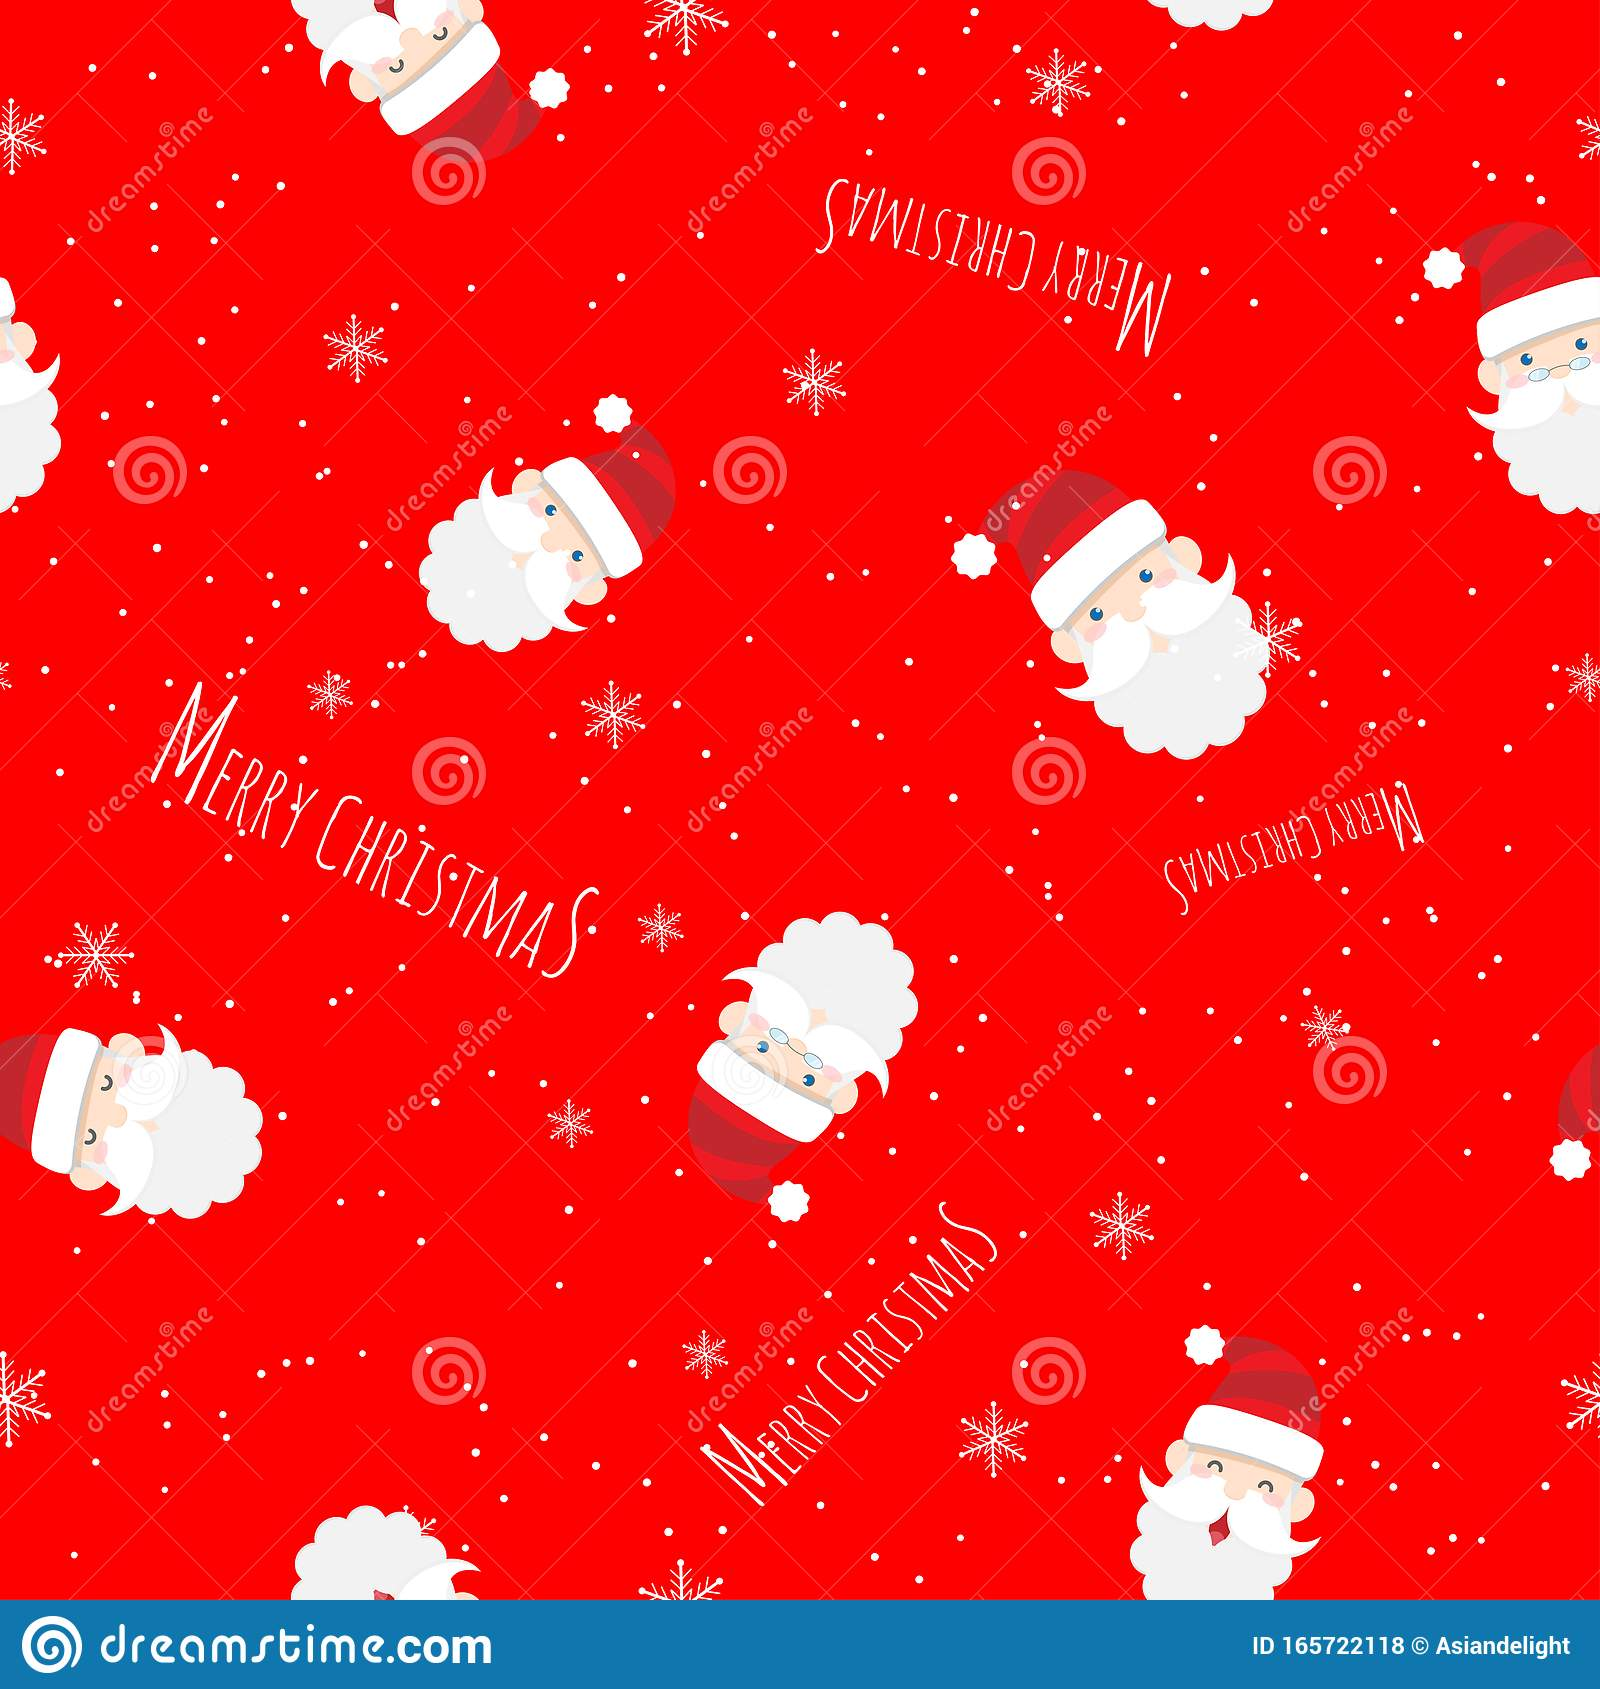 vector seamless cute santa claus cartoon text merry christmas pattern red background christmas wallpaper background 165722118